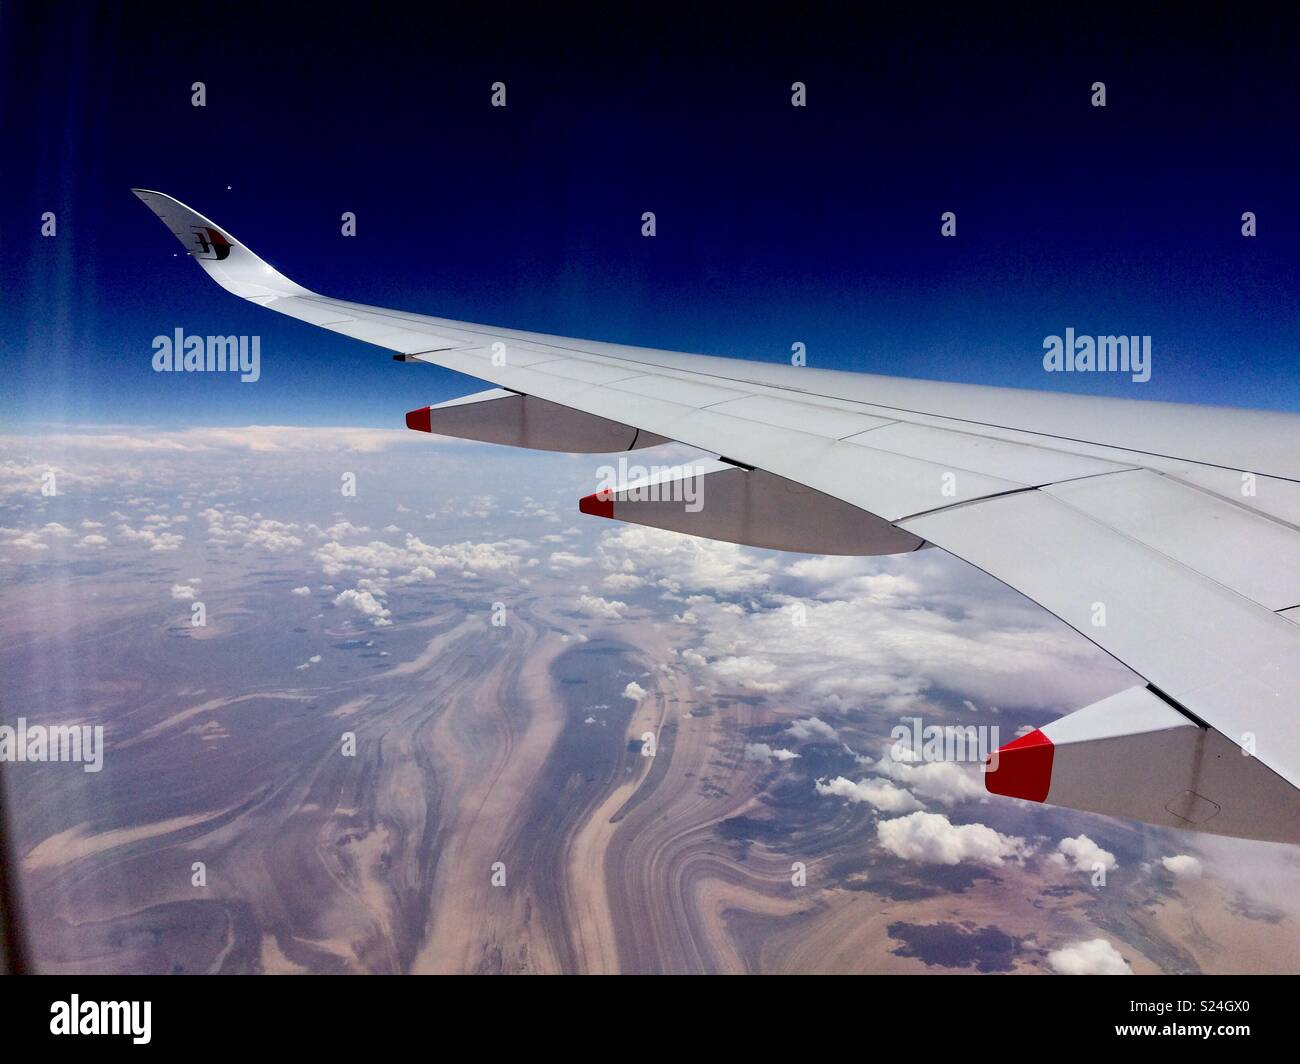 Wing and Desert - Stock Image